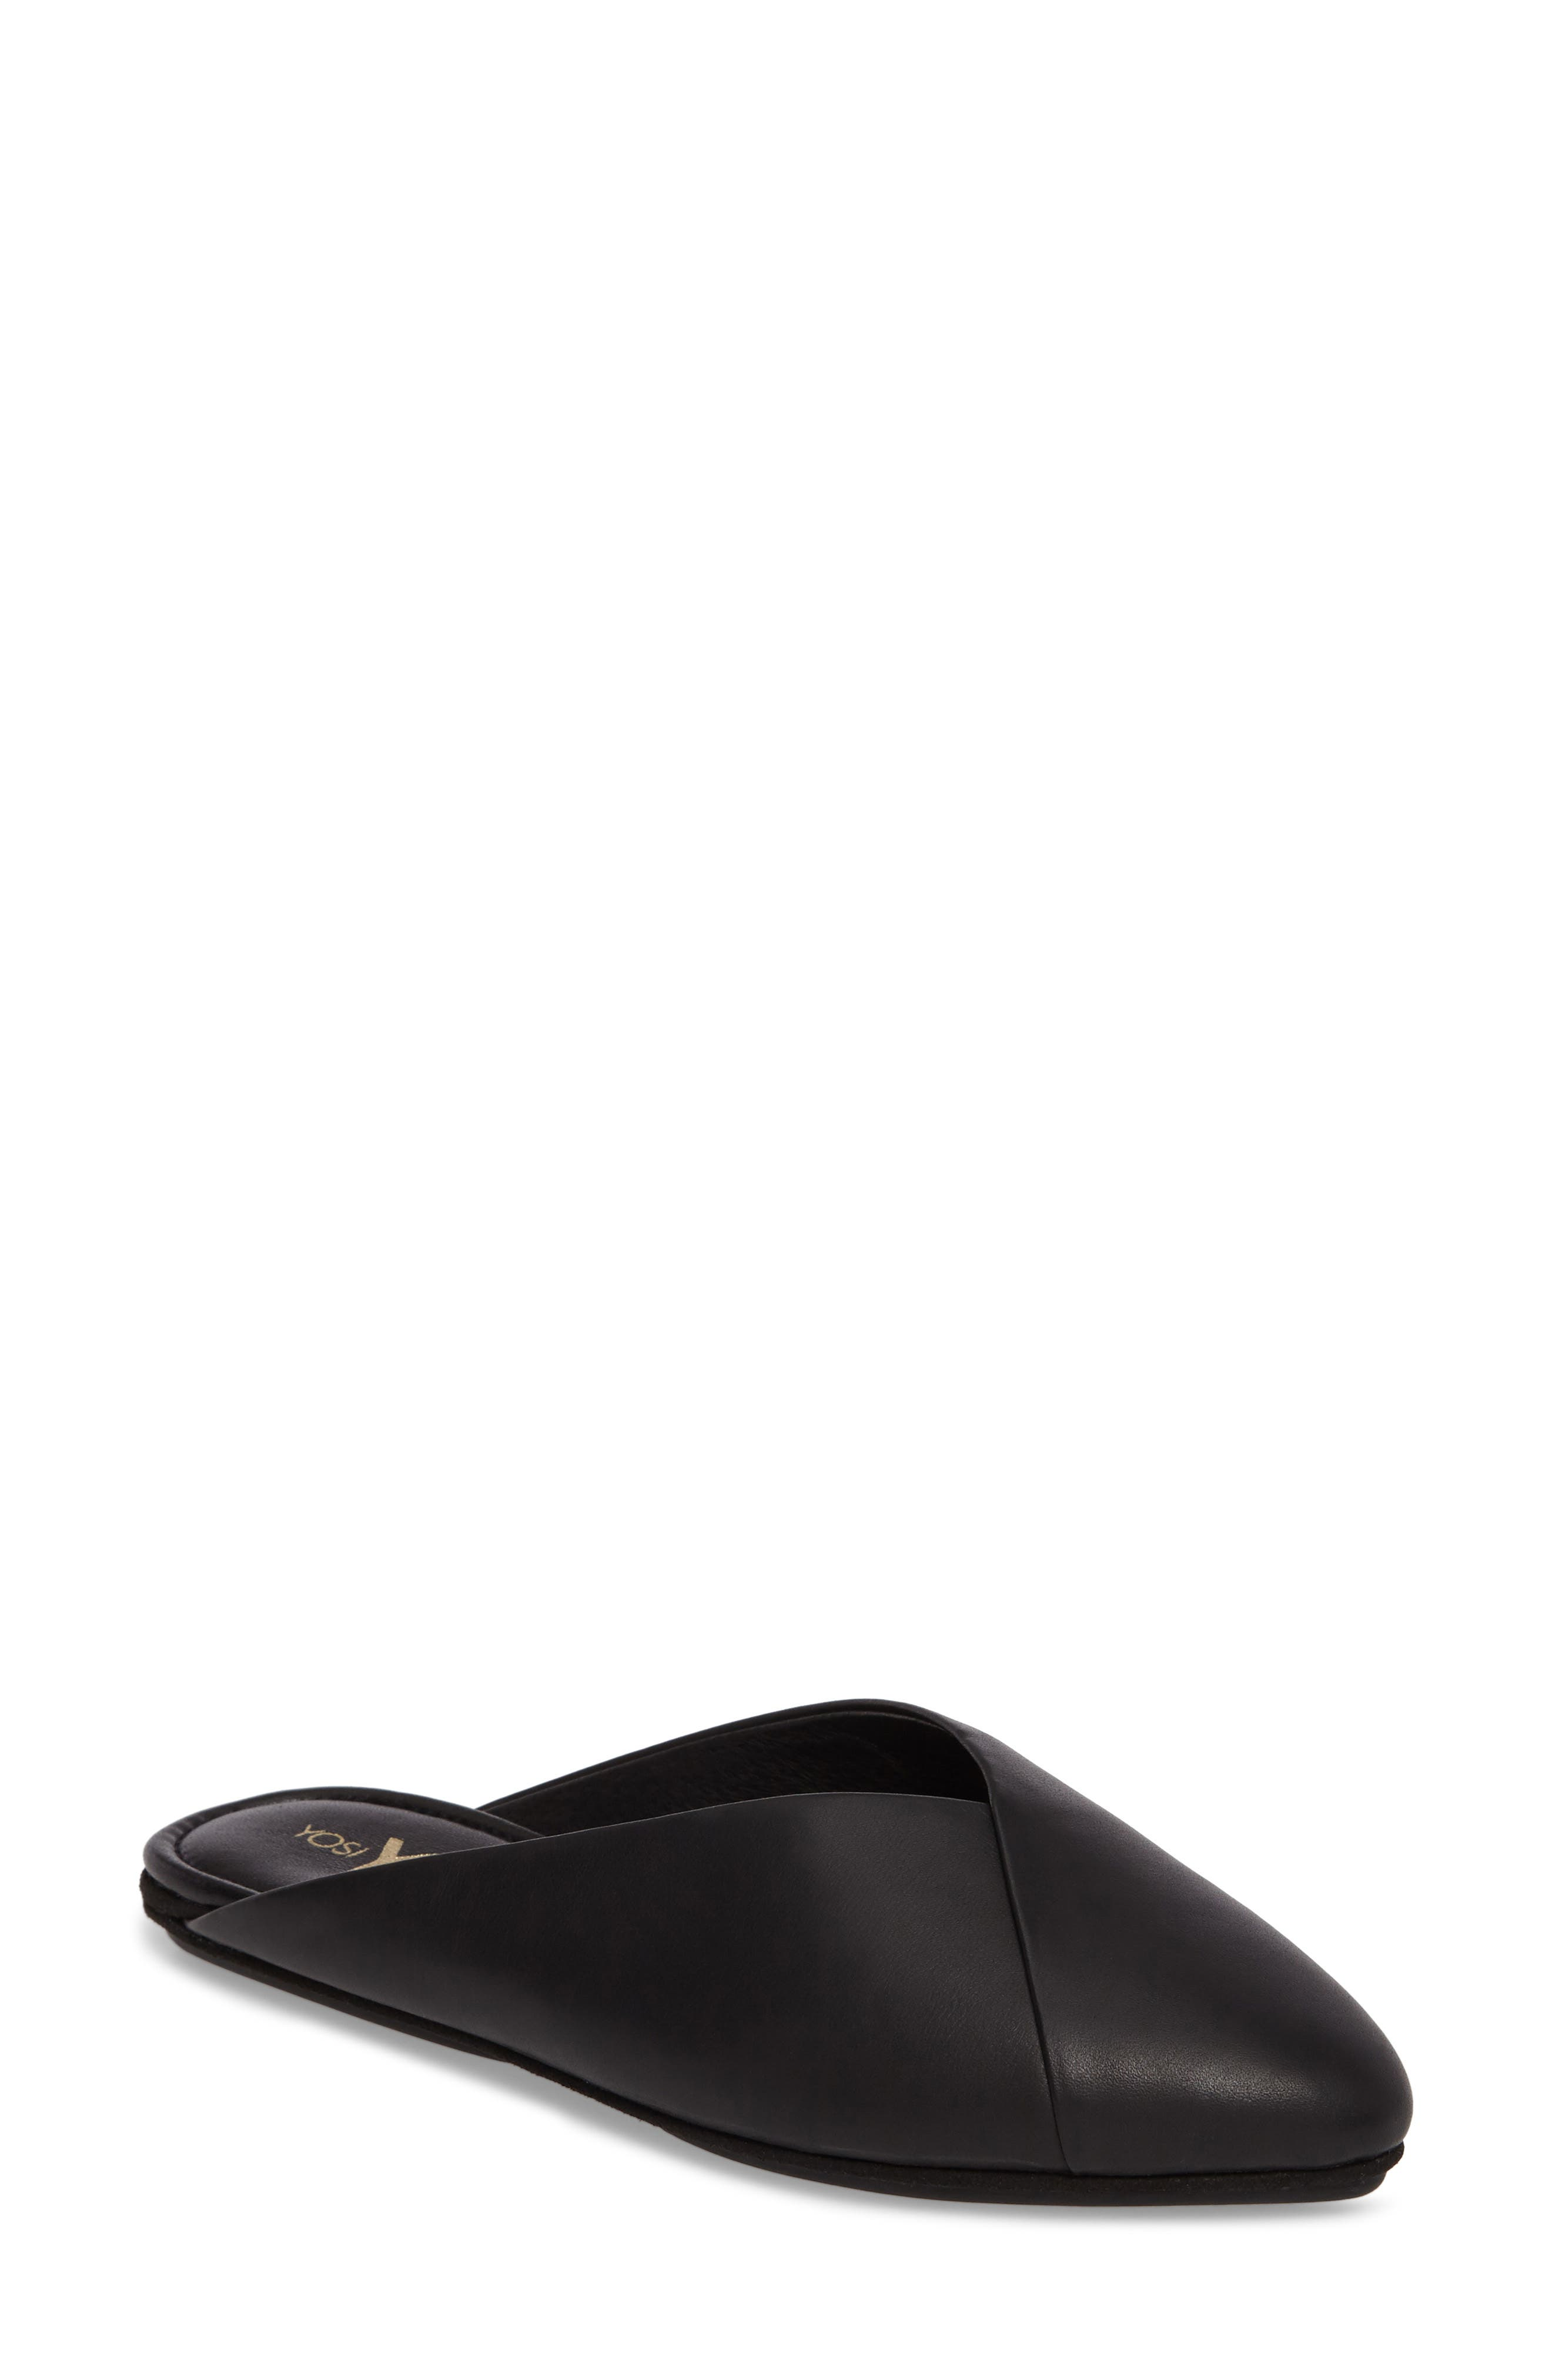 Valentina Slide Mule,                         Main,                         color, 001